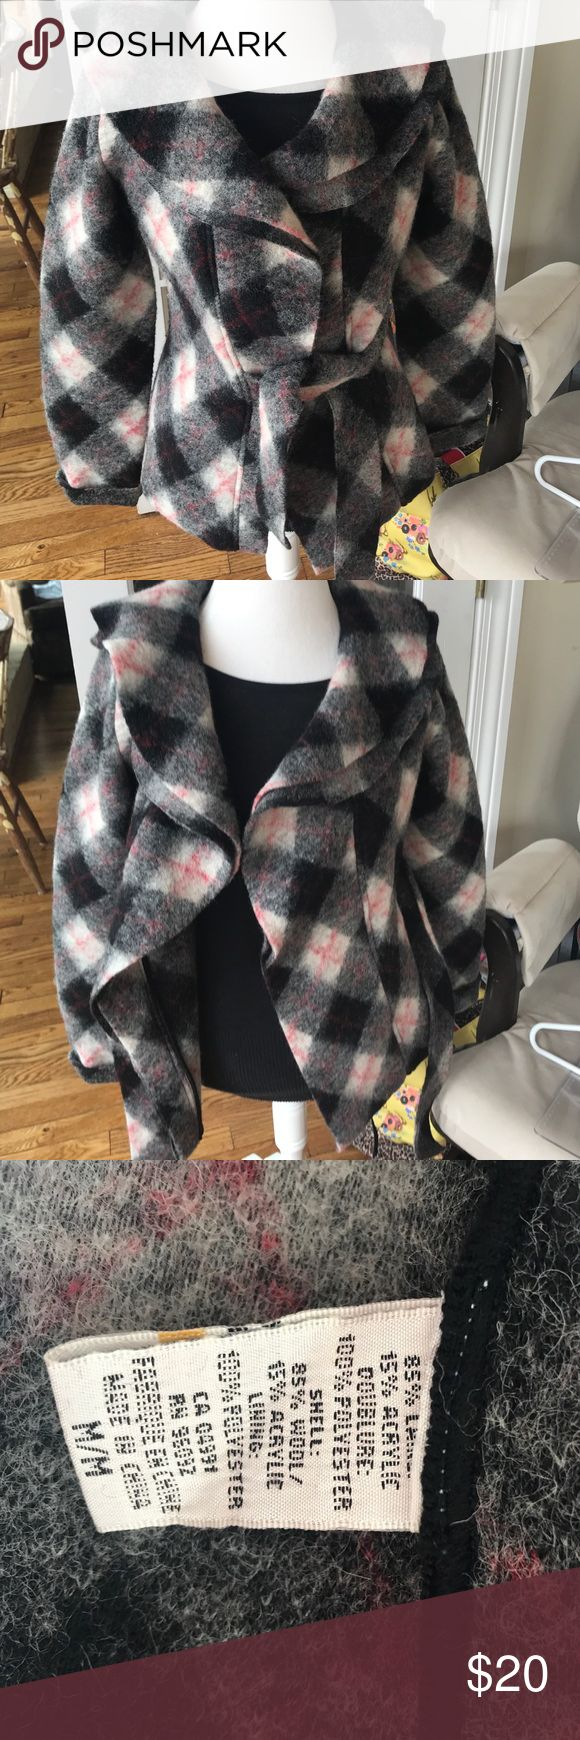 Katherine Barclays Coat Black and Red Plaid: wool coat/sweater Katherine Barclay Jackets & Coats Blazers